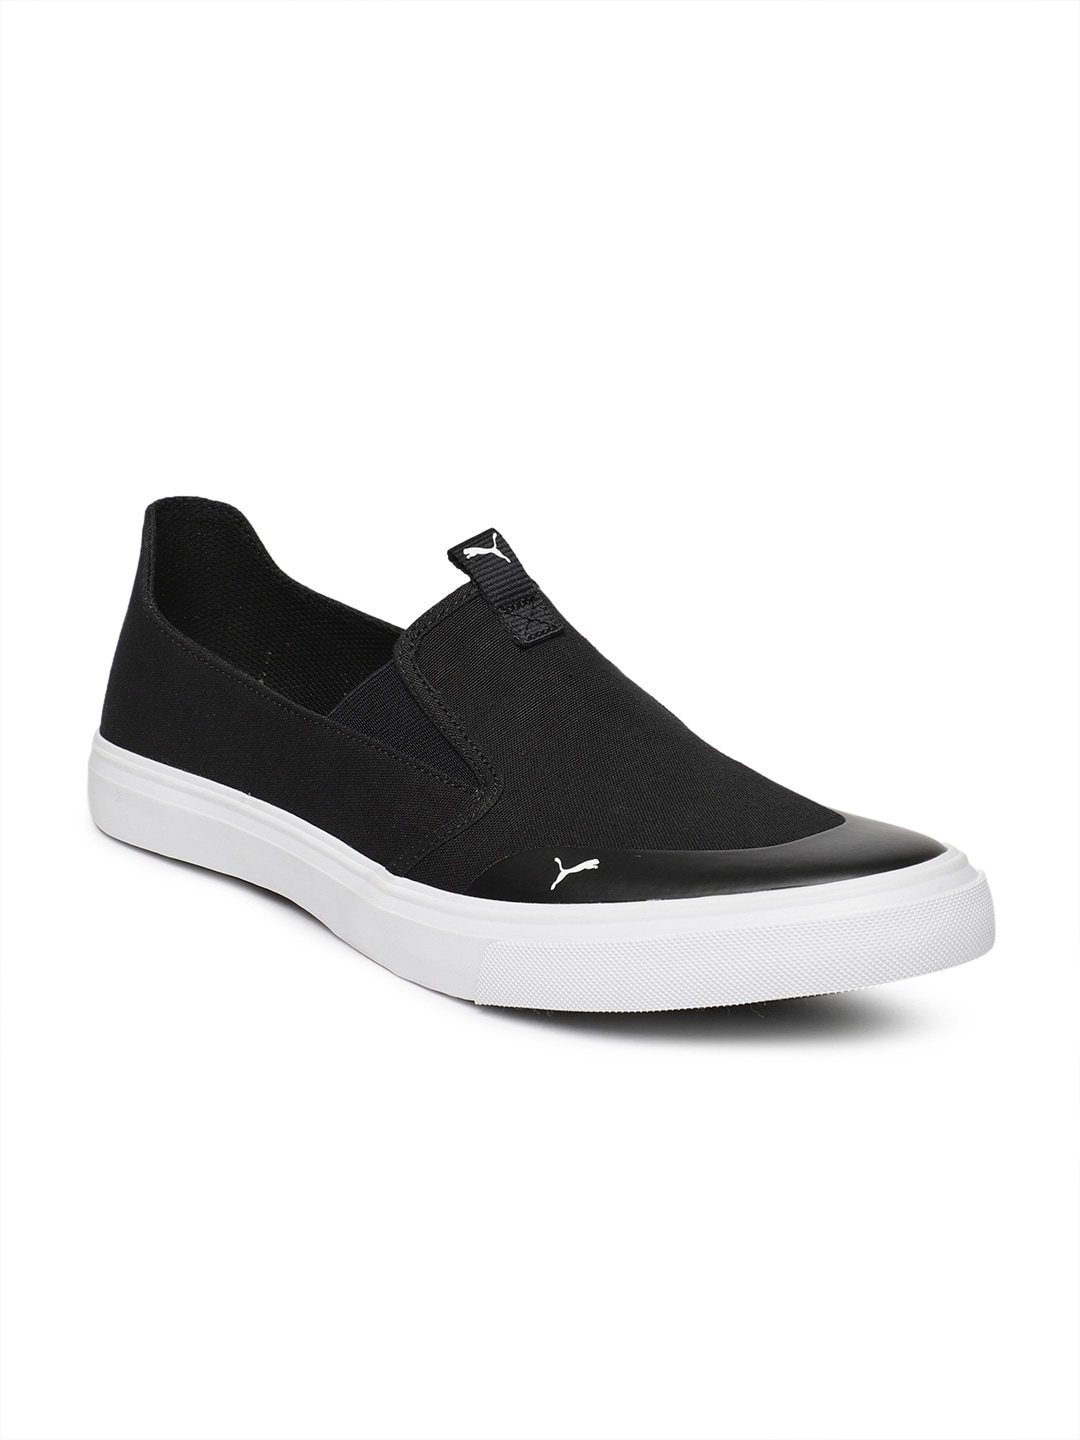 20a18b5b7 Puma Shoes - Buy Puma Shoes for Men   Women Online in India